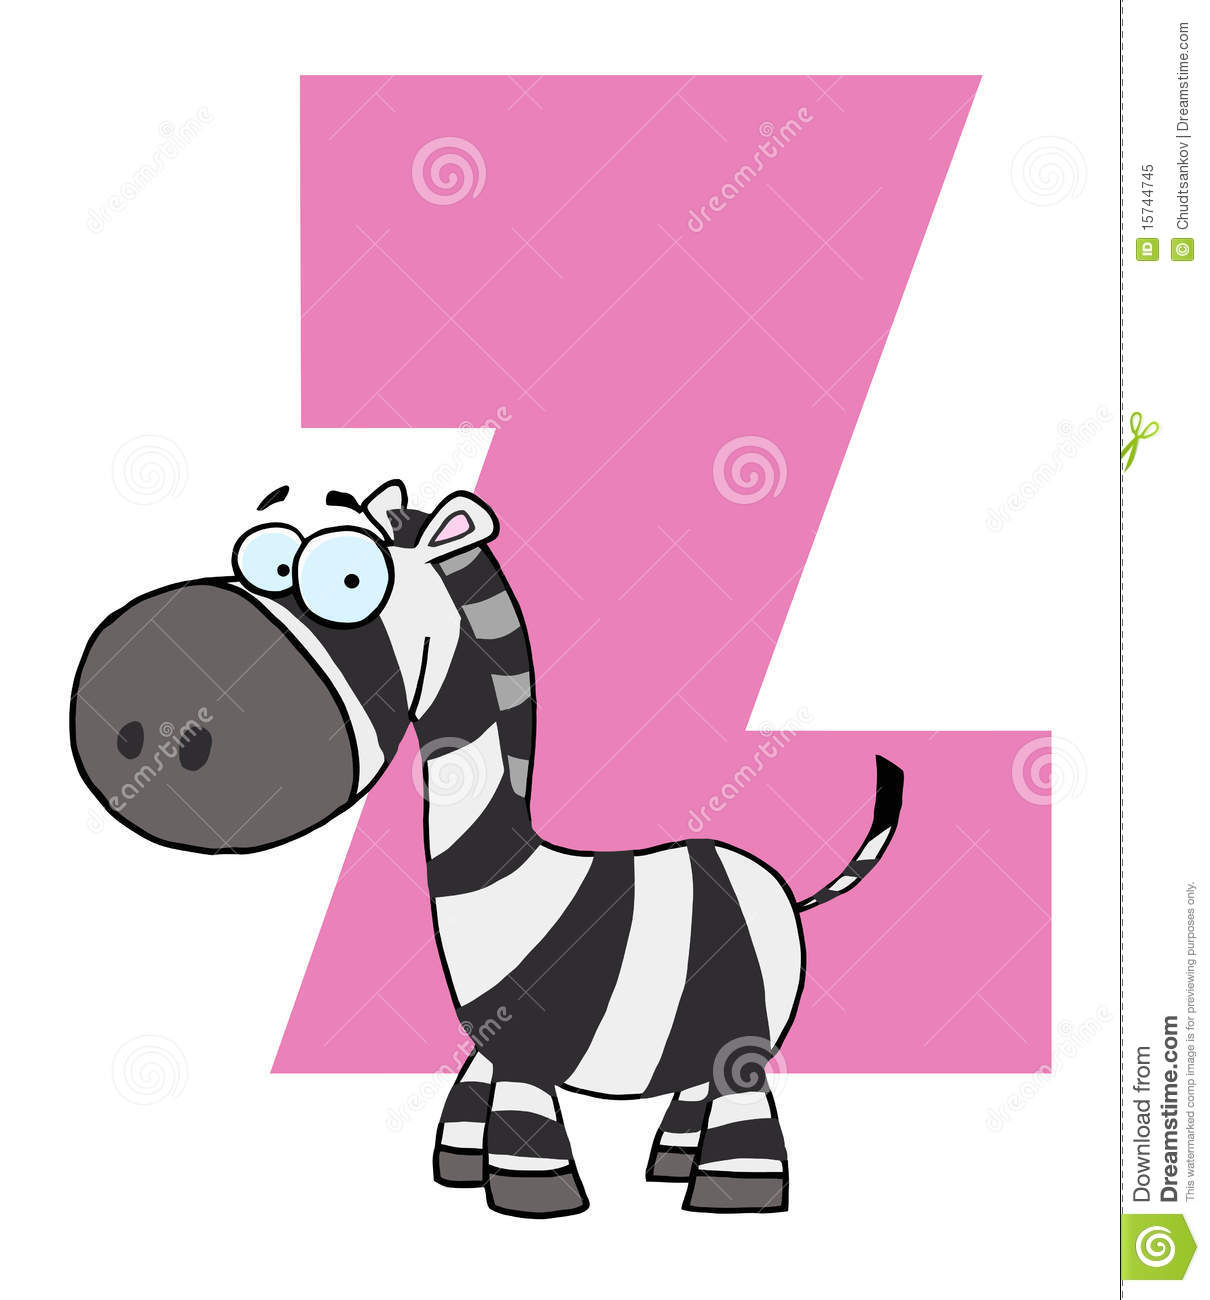 Cartoon Characters Letter Z : Funny cartoons alphabet z royalty free stock photo image